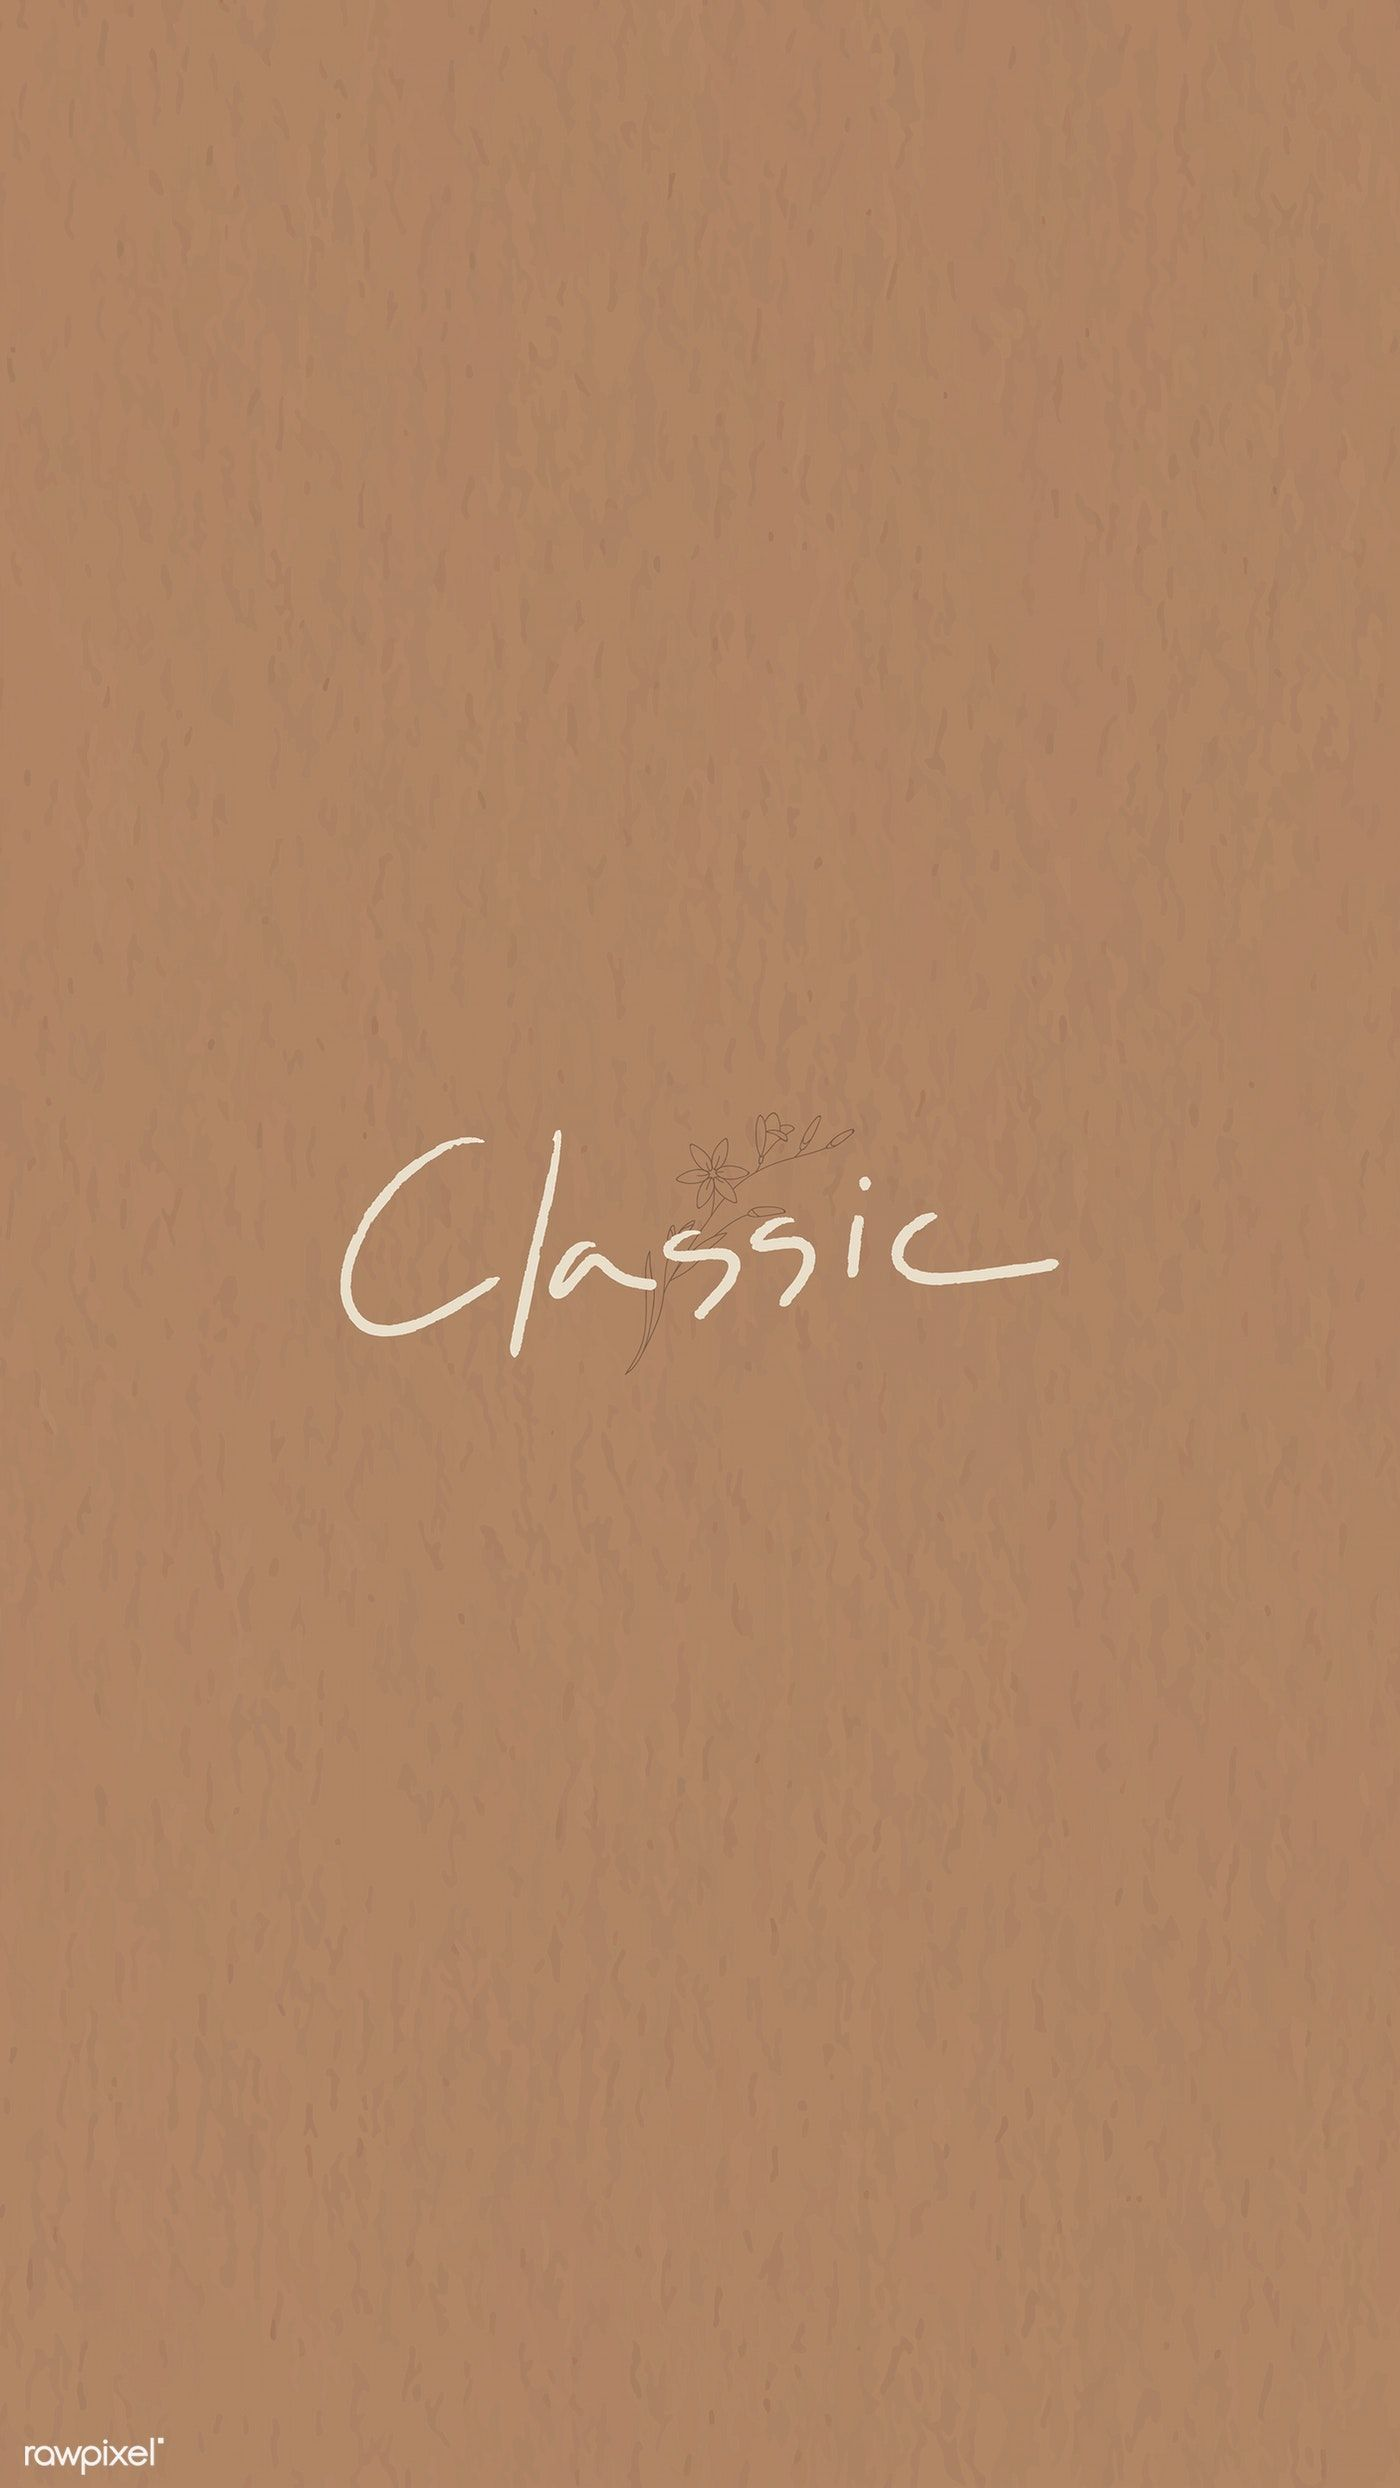 Classic typography on a brown backgrounds mobile wallaper vector